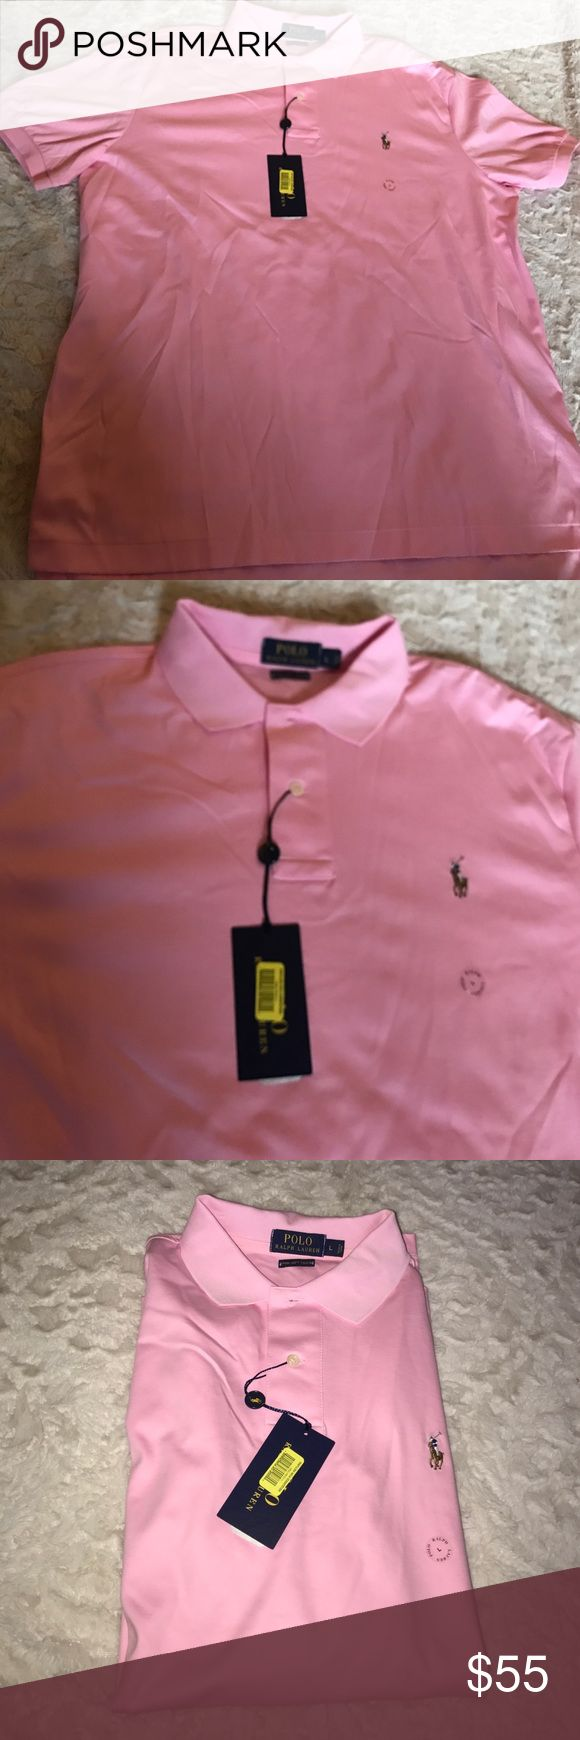 NWT Polo Ralph Lauren Men's Shirt L Size Large  New with tags  My prices are firm and fair 100% Pima Soft Touch Cotton  Color Light Pink I guarantee authentication of this shirt.  I can make you a bundle to save money on shipping cost So please check my other items.  Code : MA Polo by Ralph Lauren Shirts Polos